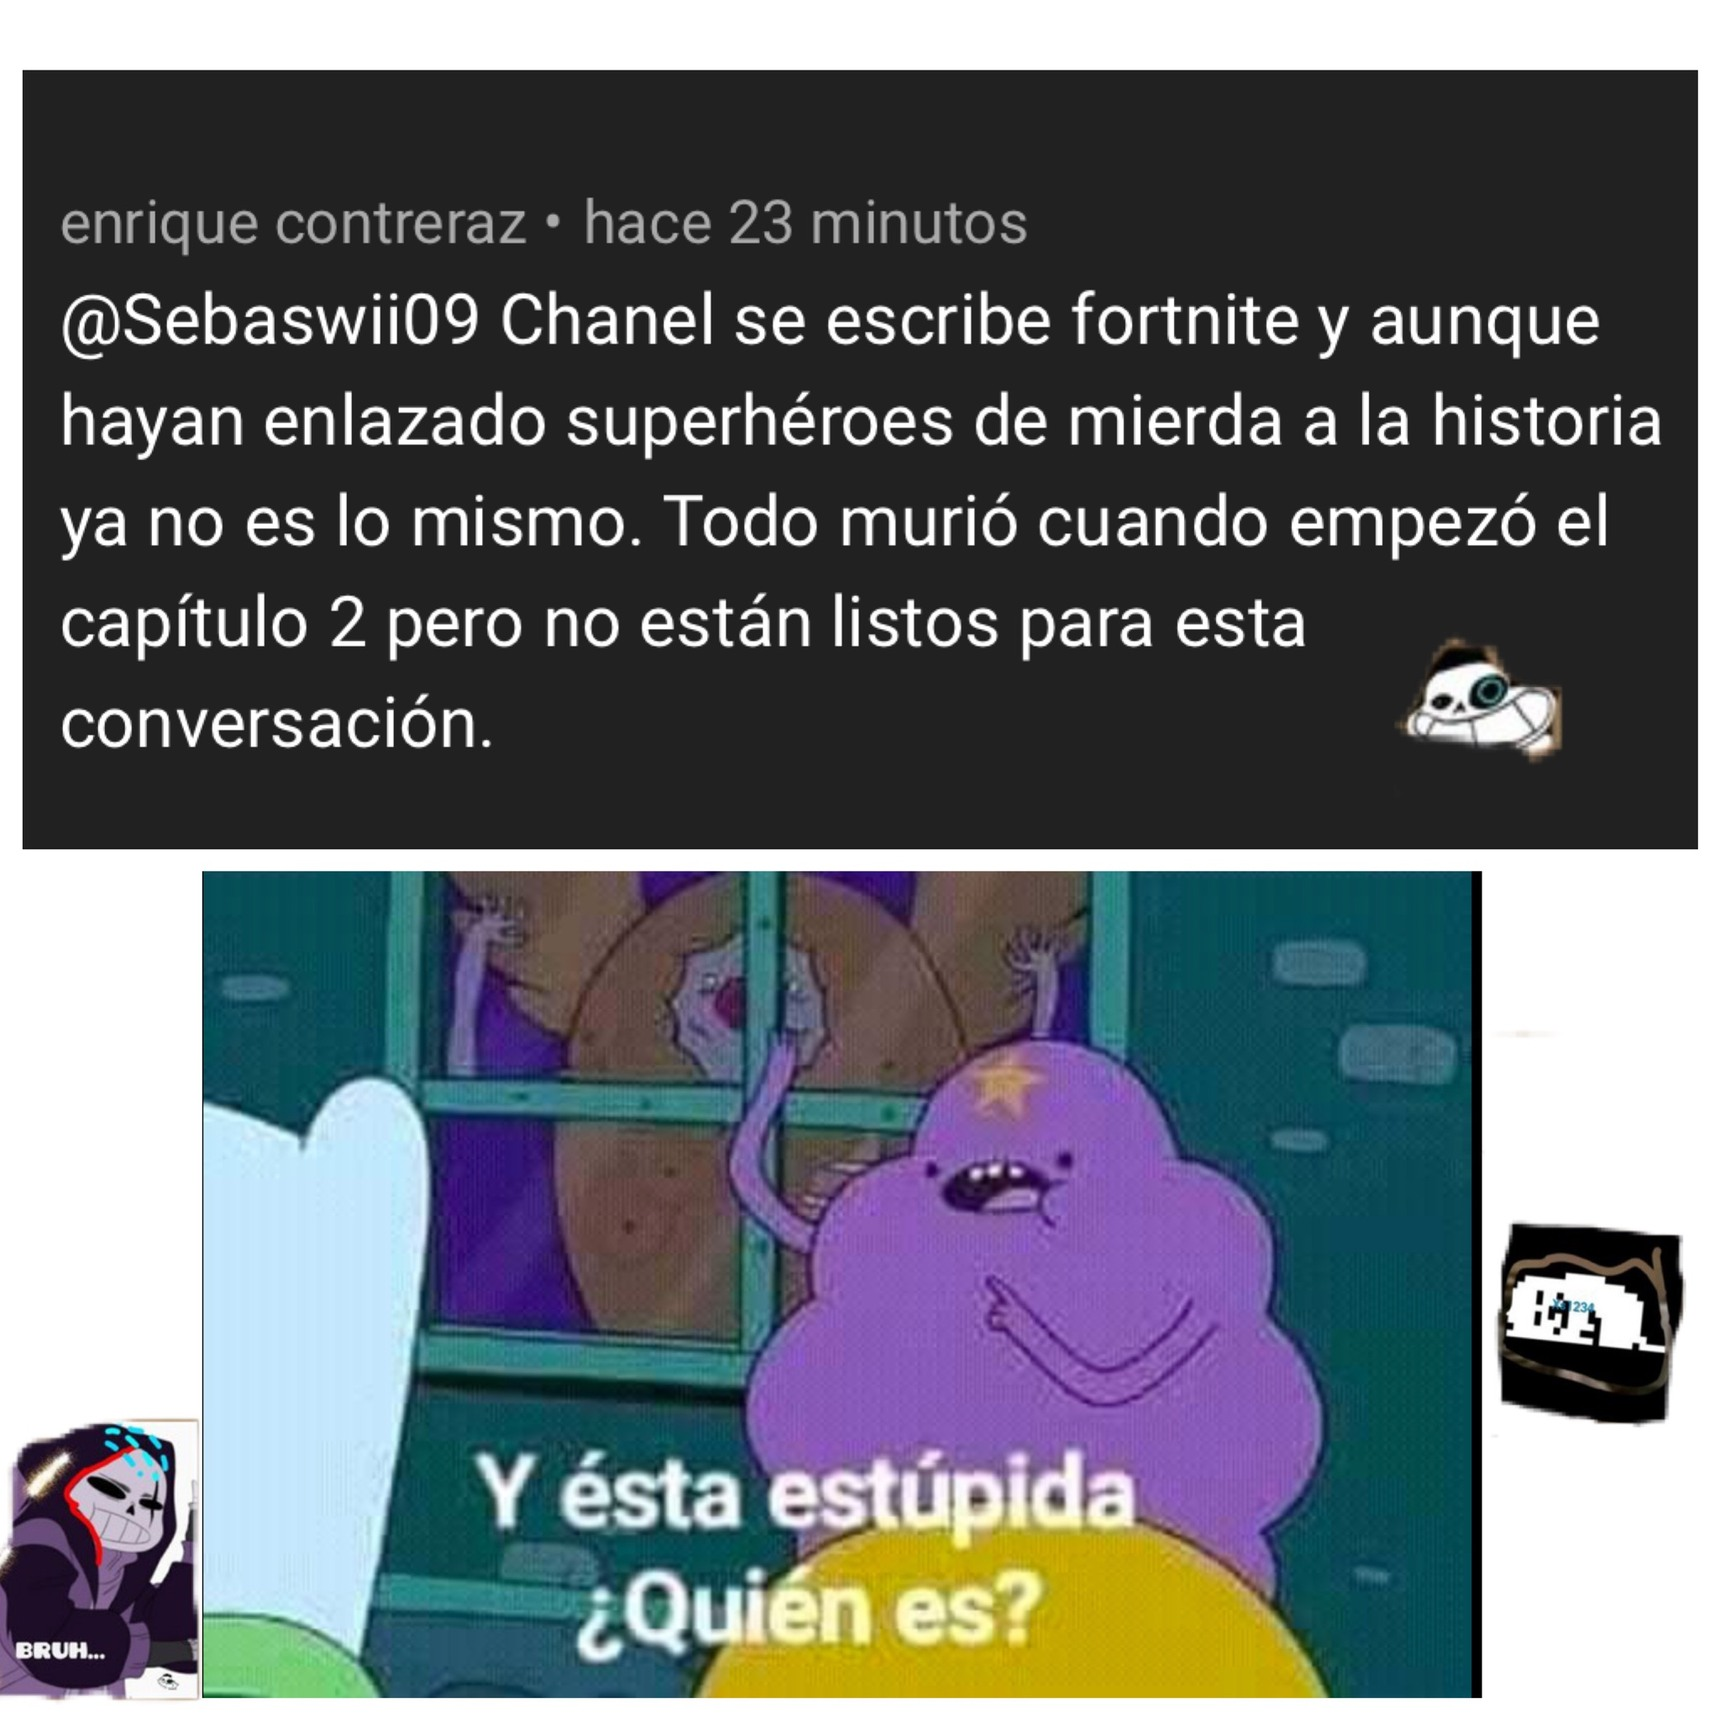 sacado de el trailer de fortnite temporada 4 - meme